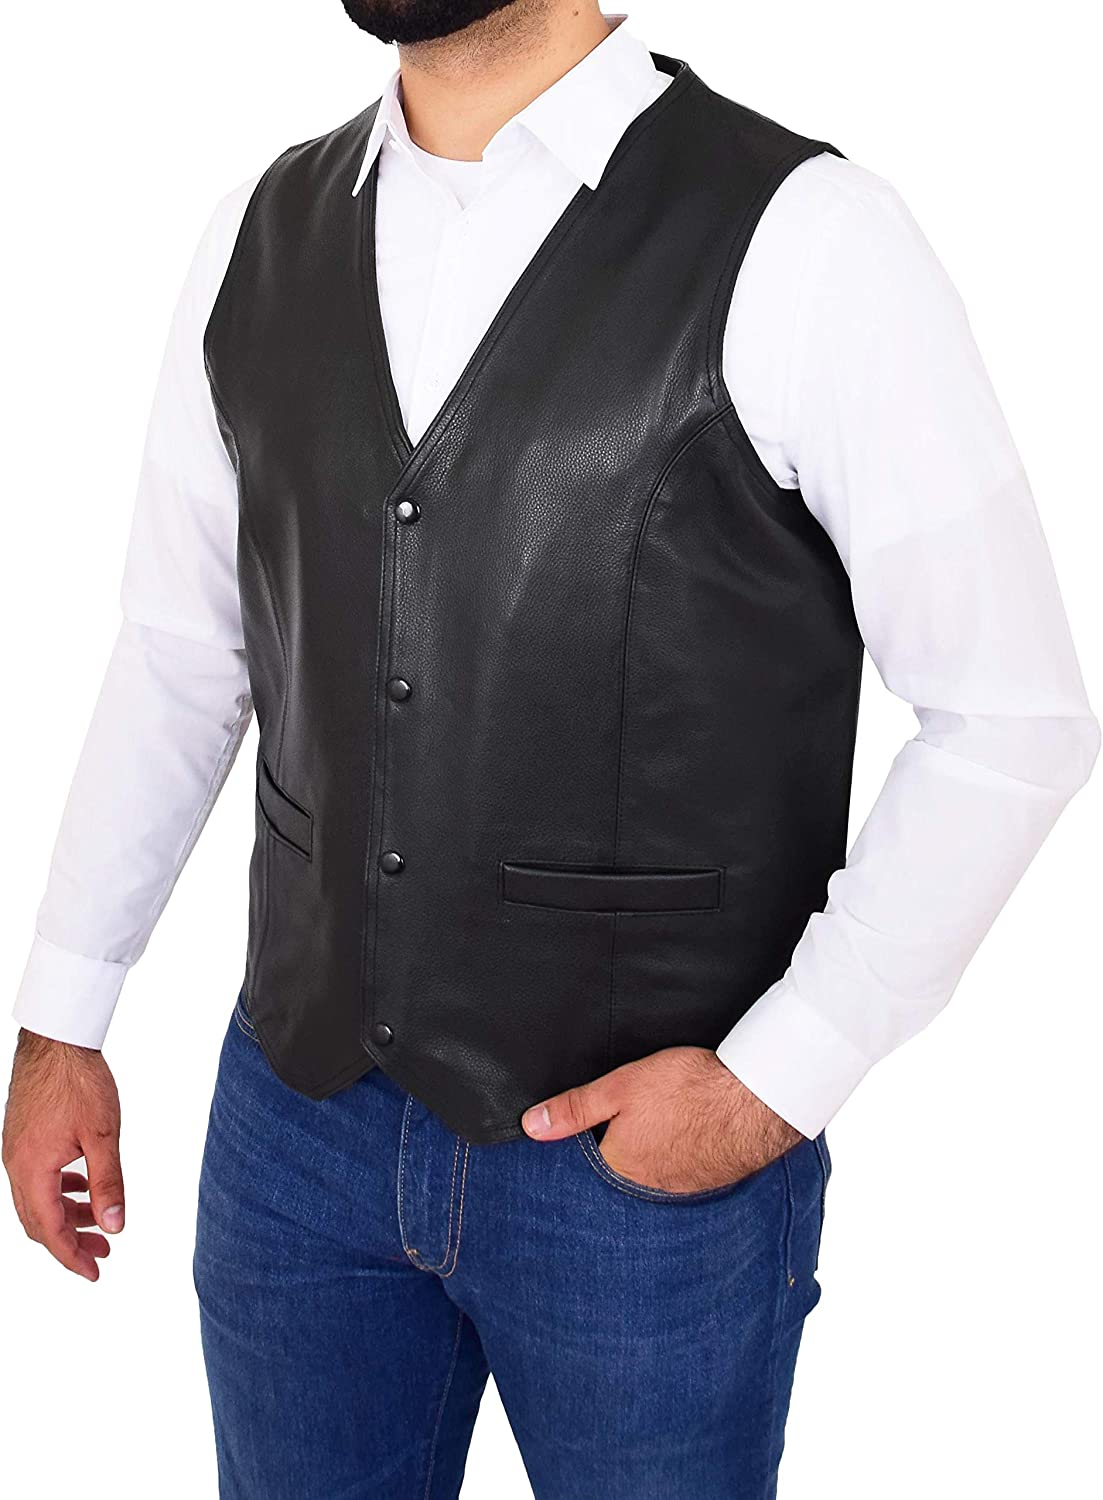 Mens Real Leather Waistcoat Motorcycle Biker Style Black Gillet Vest Top Quality